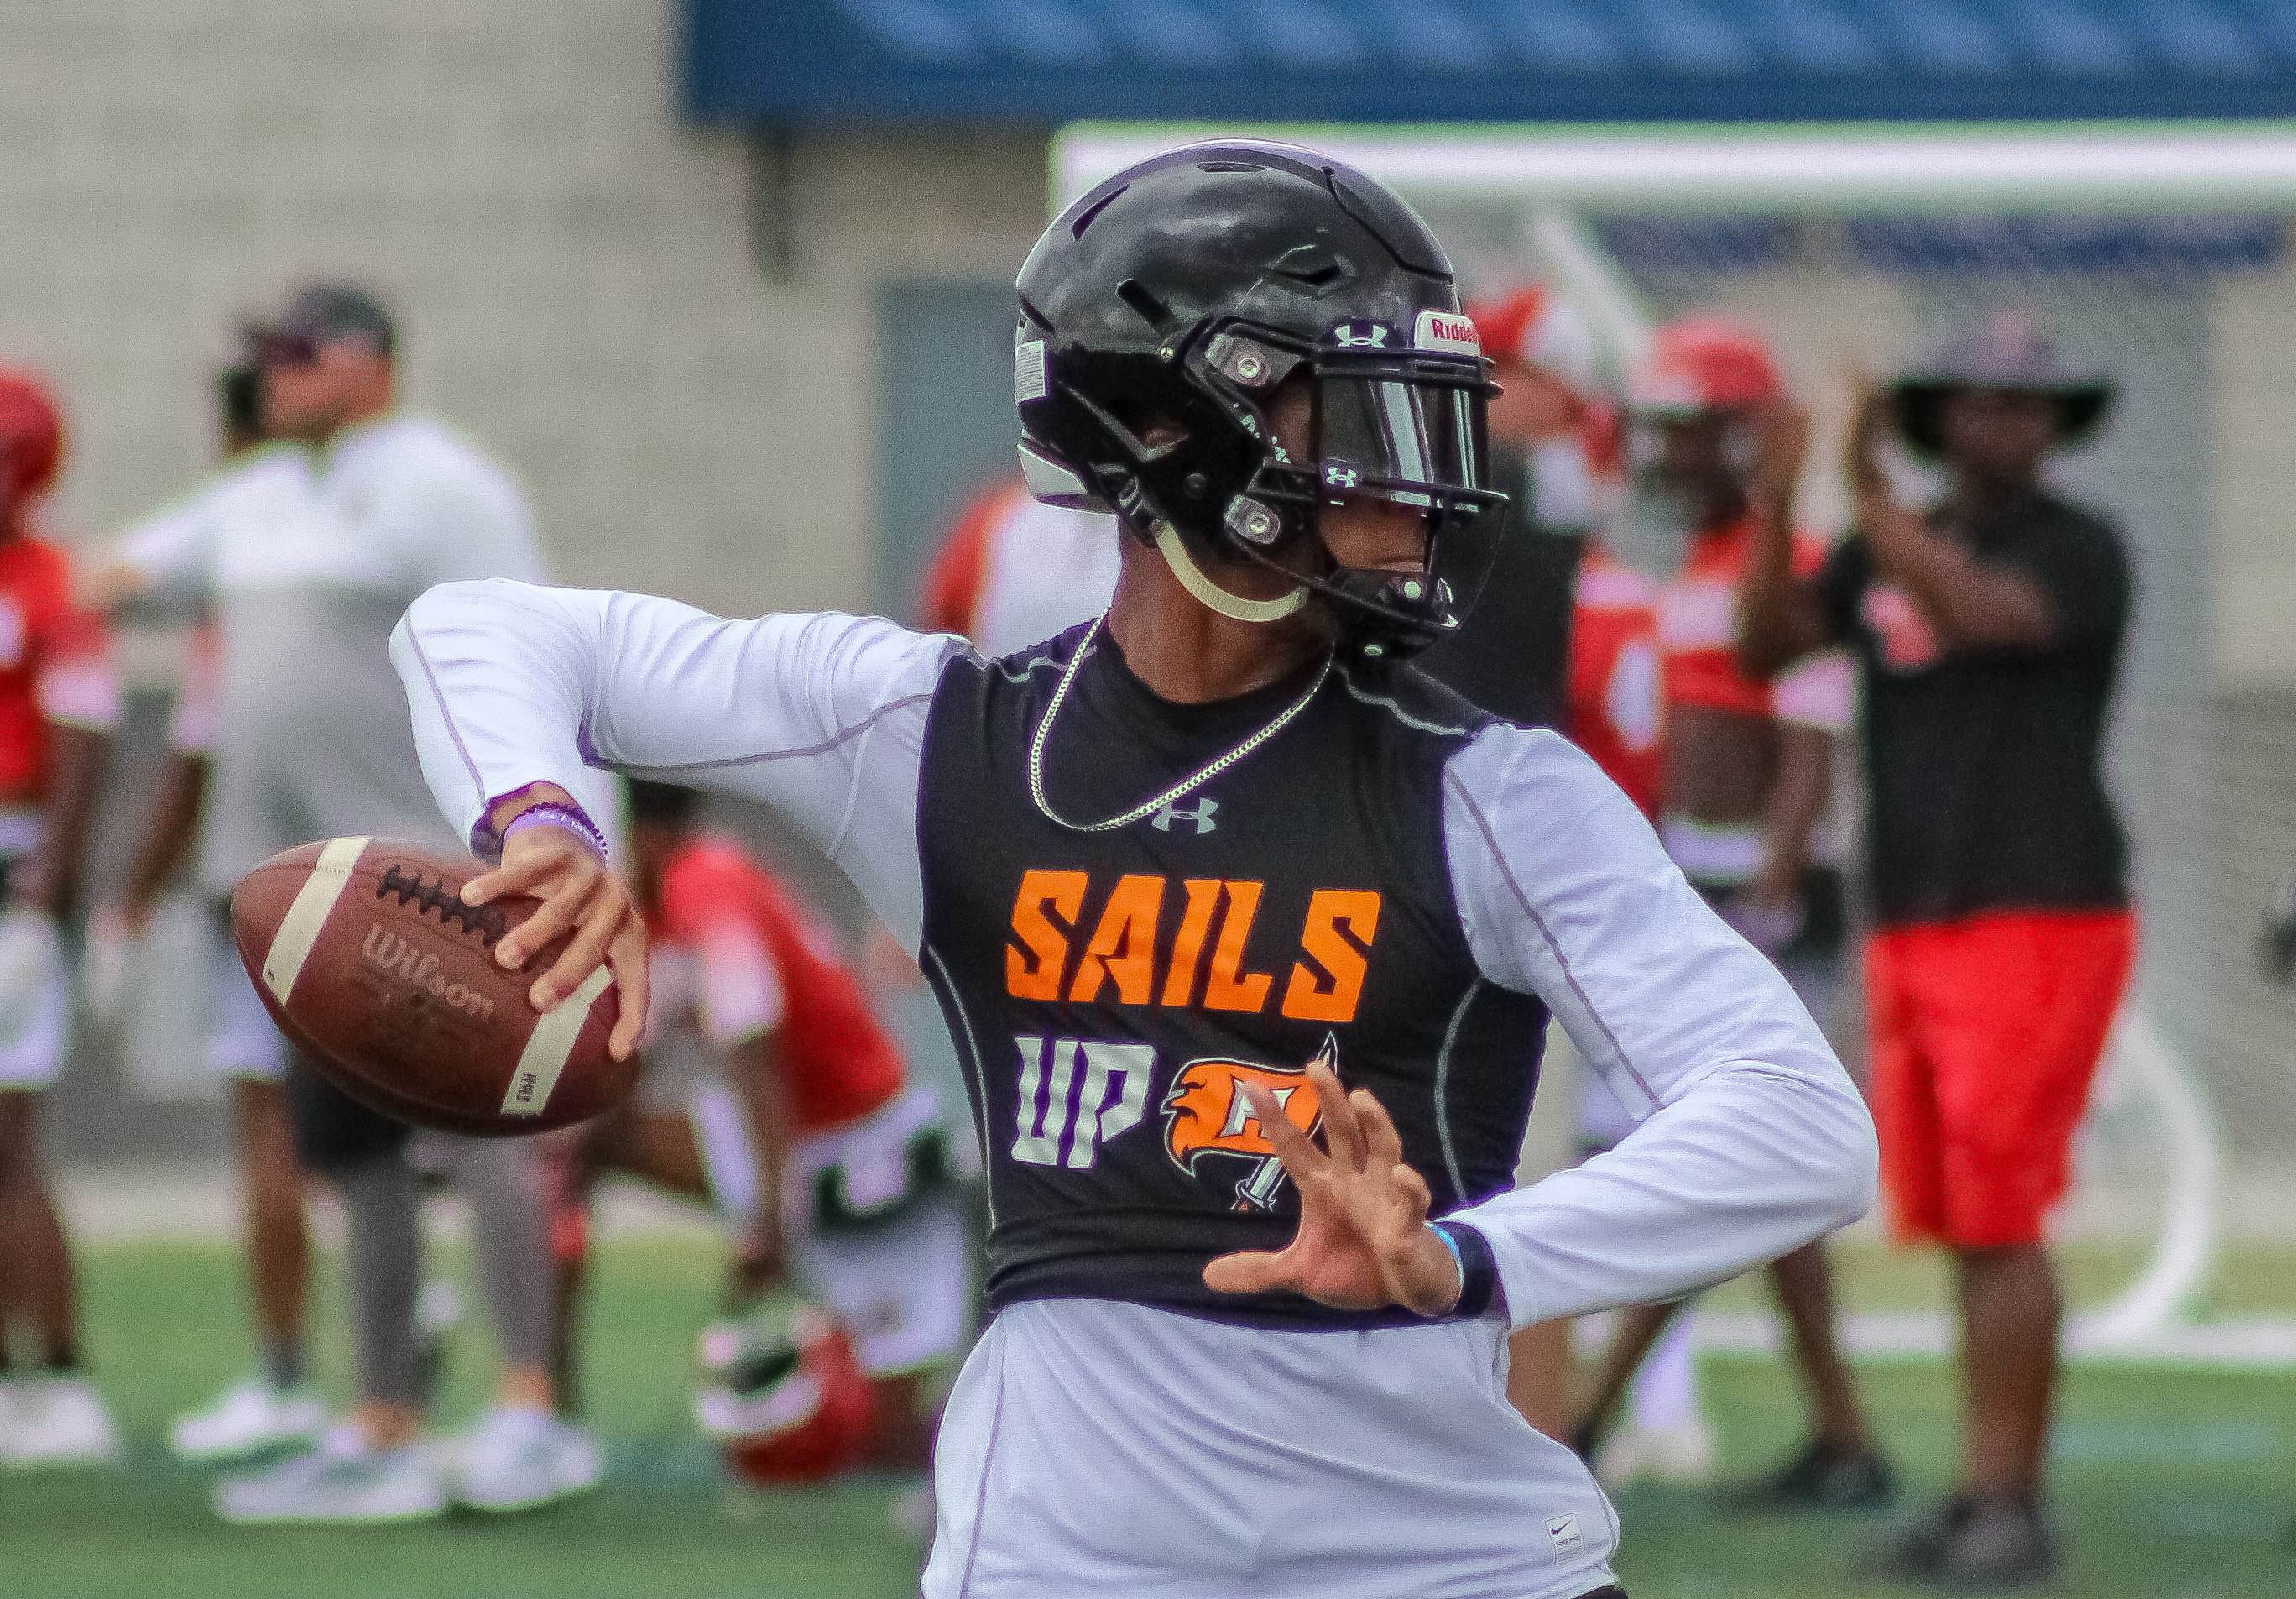 Hoover High School quarterback Robby Ashford